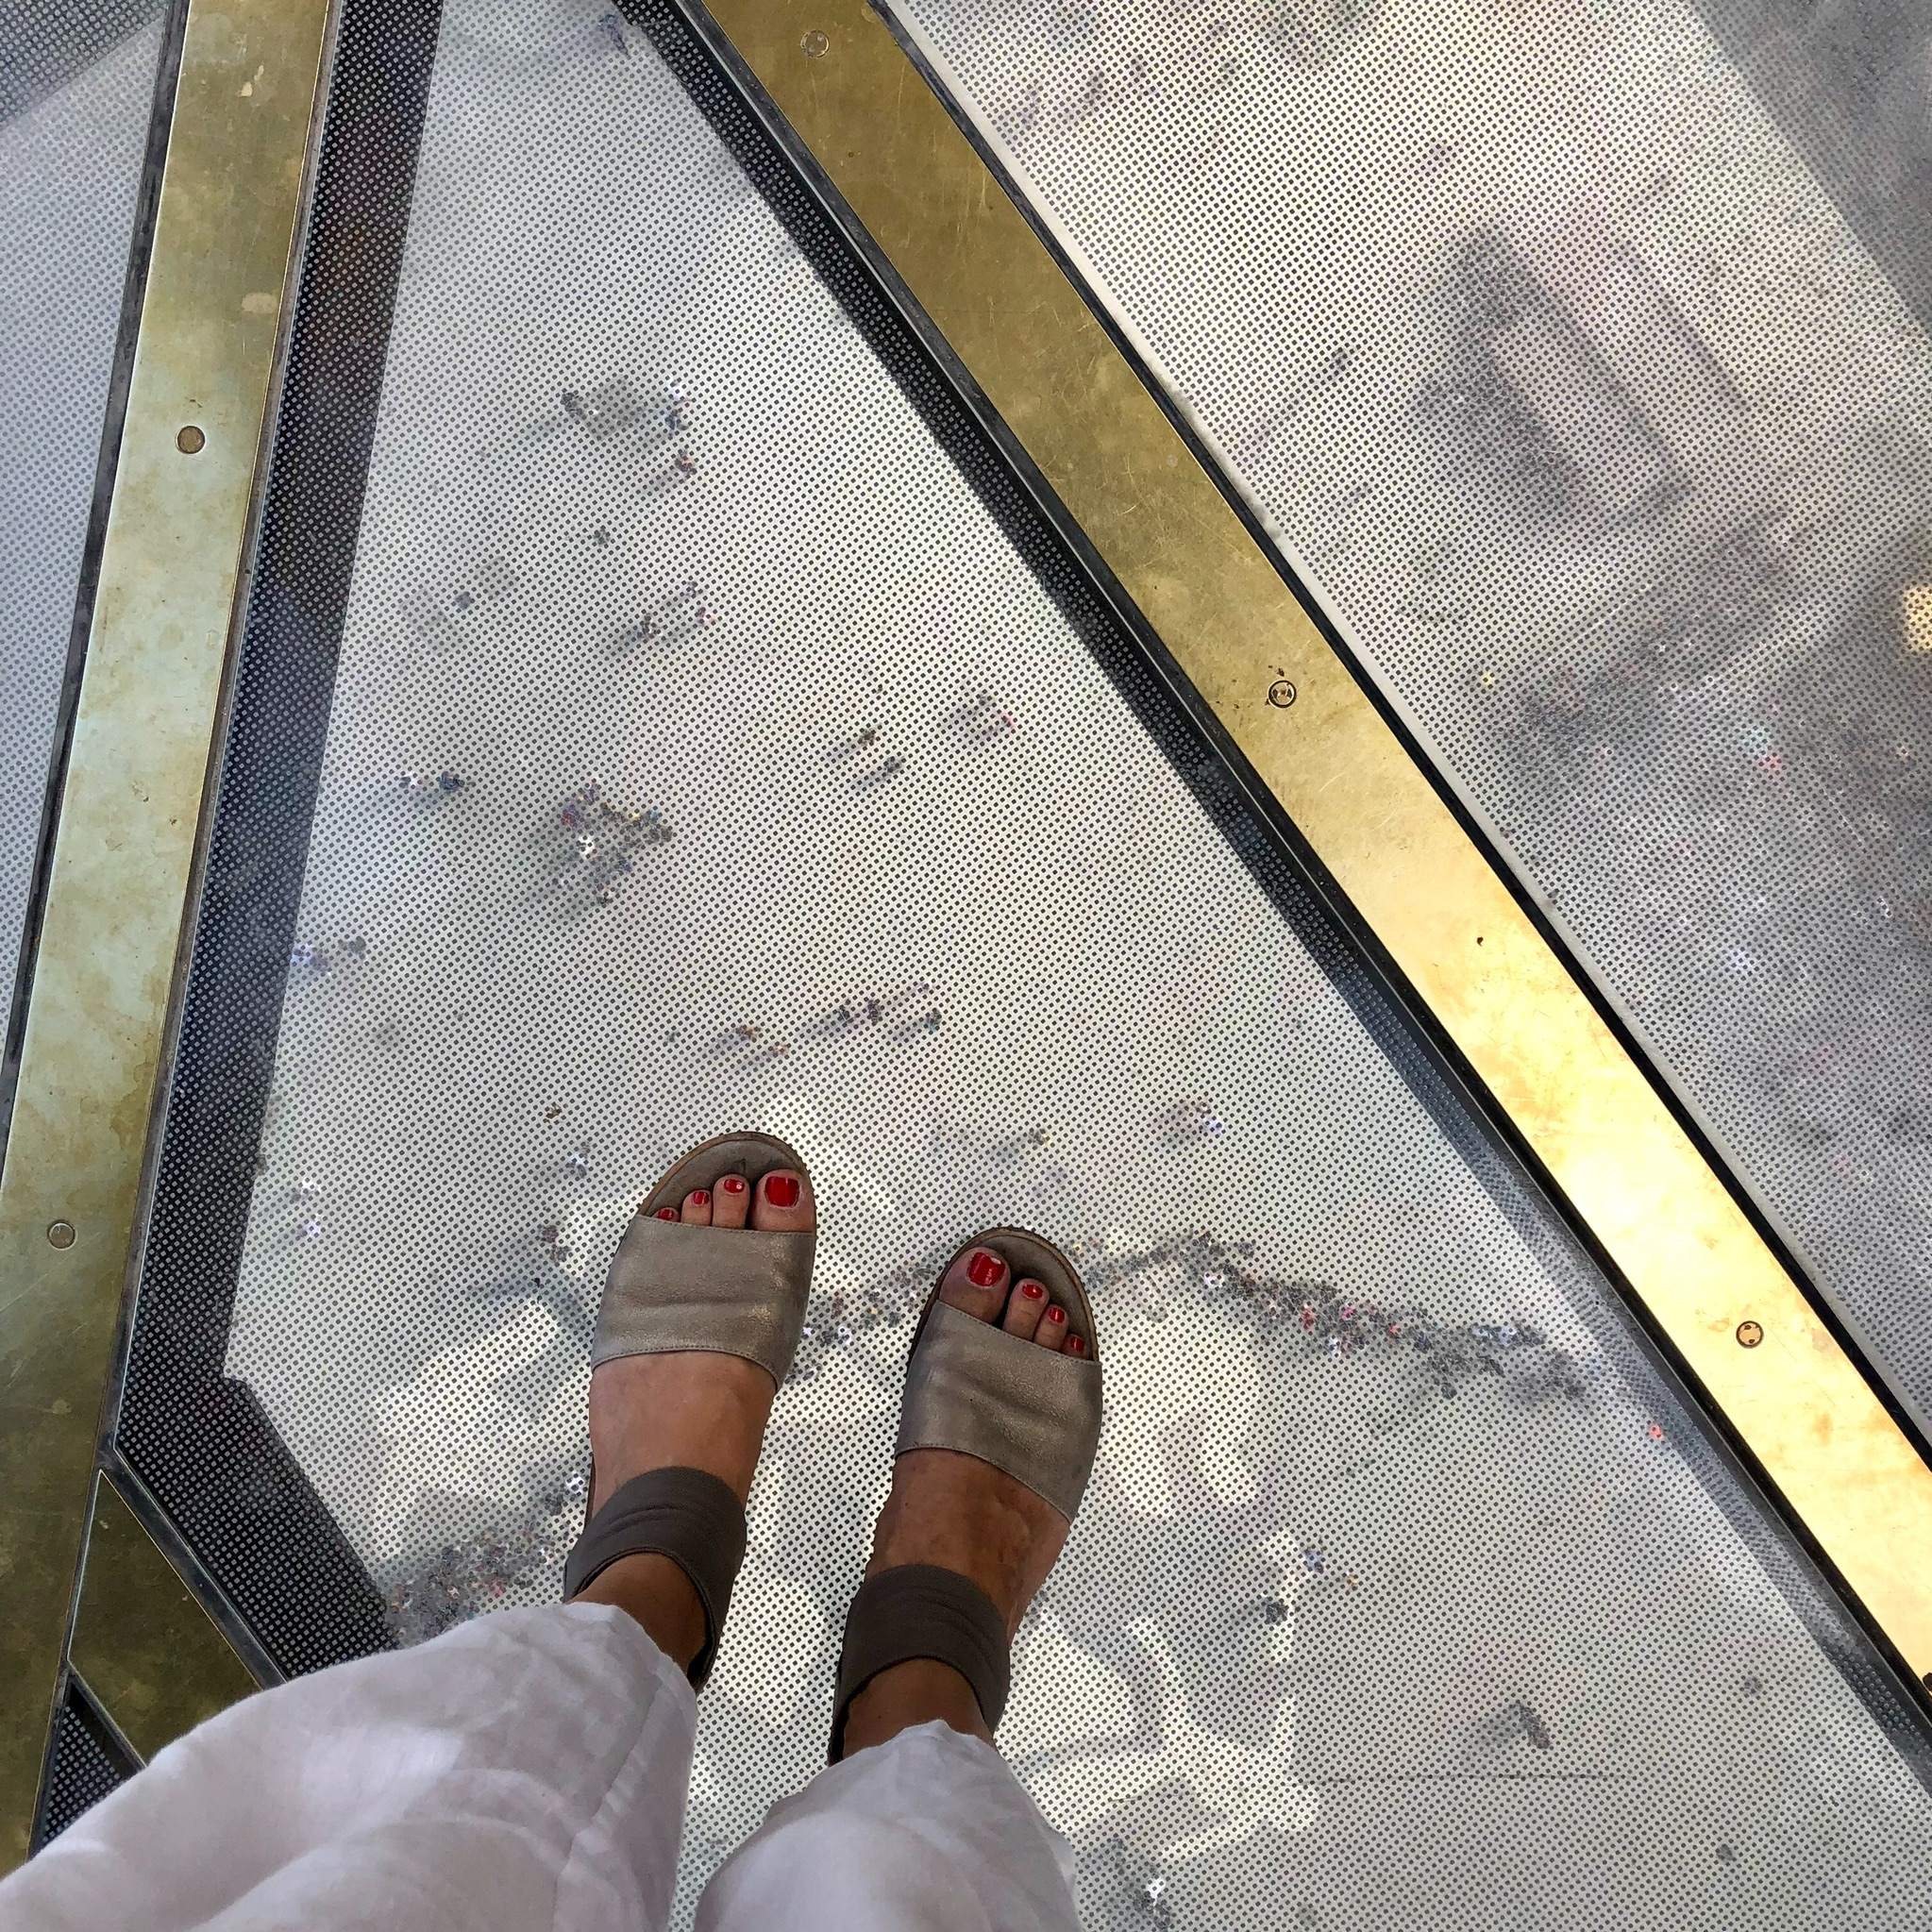 Walking on glass floors, 18 stories up on the first level of the Eiffel Tower